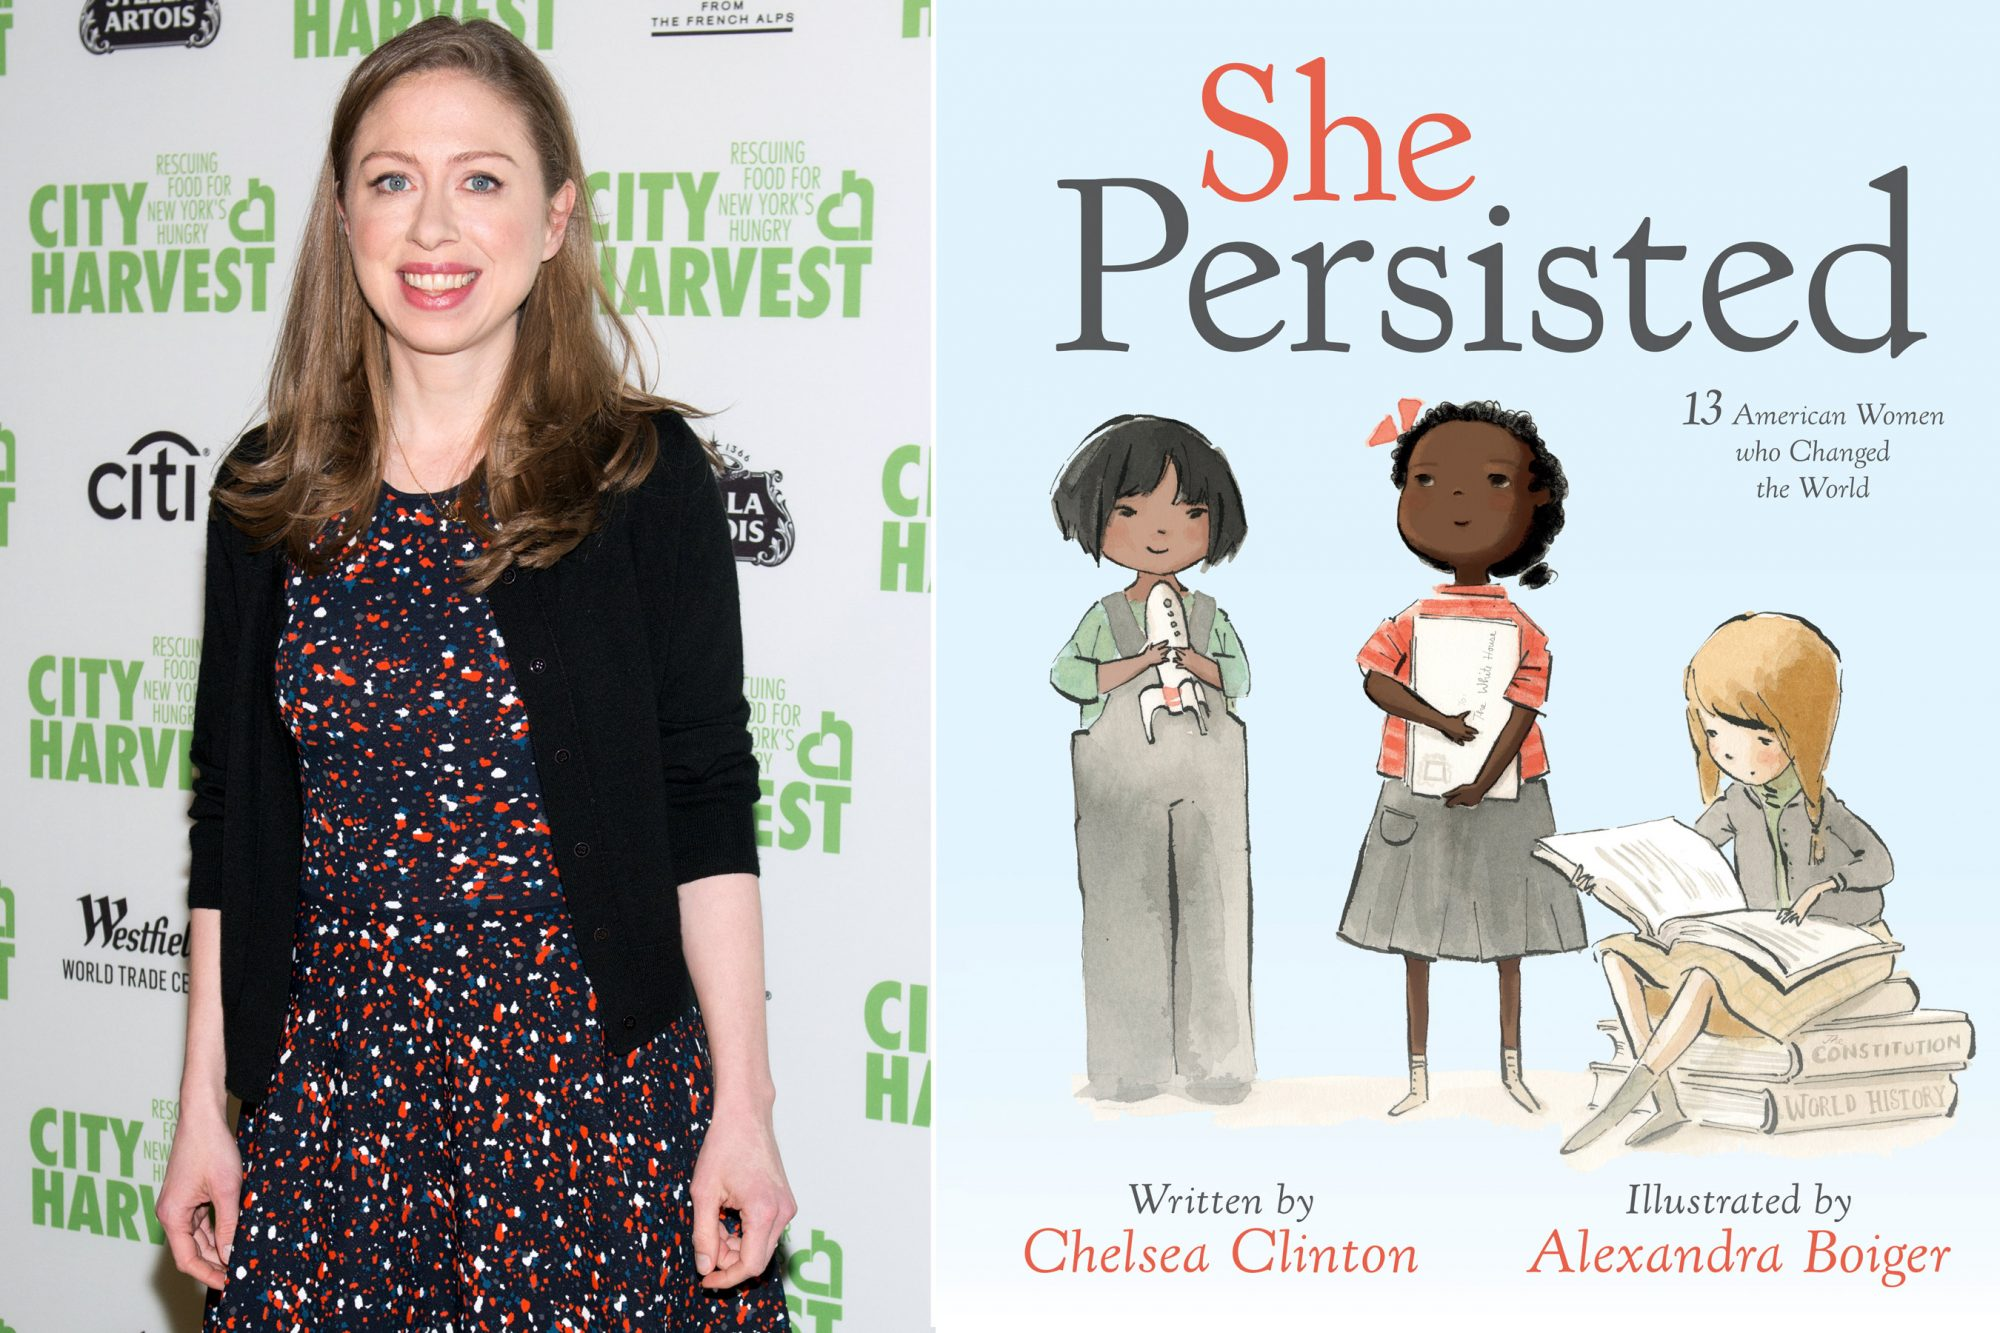 Chelsea Clinton - She Persisted book